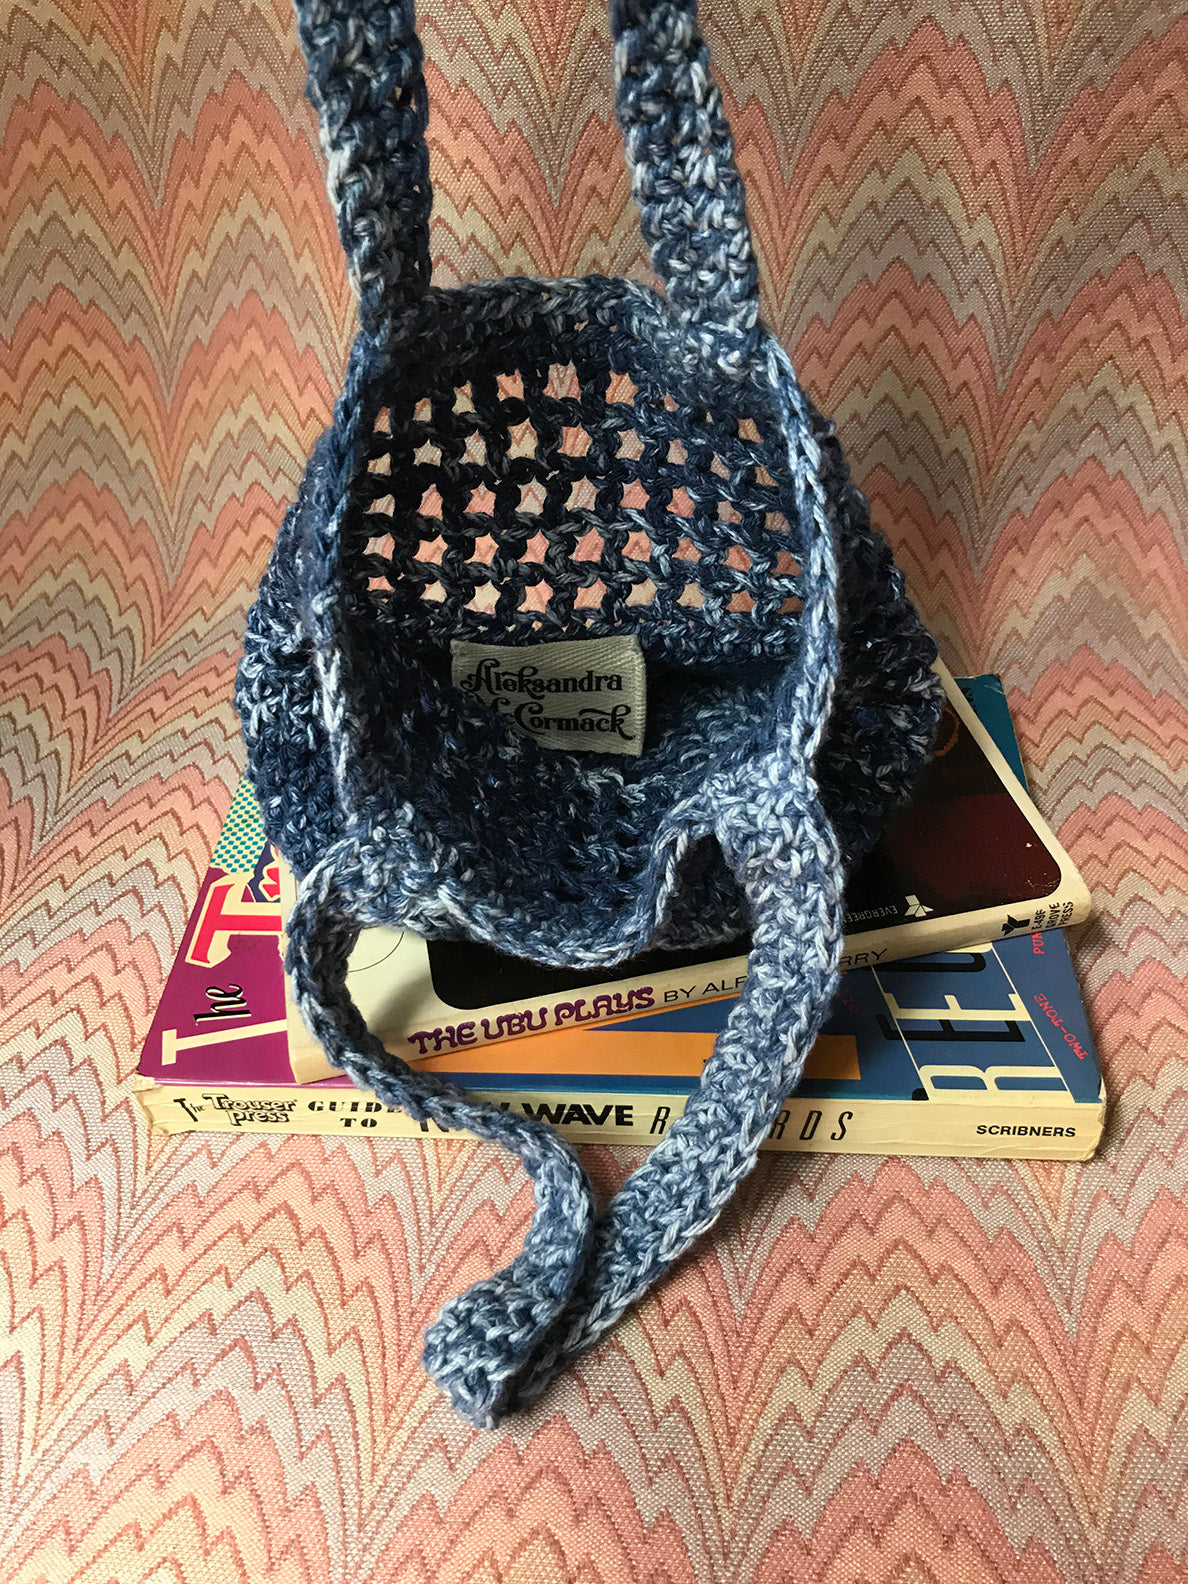 Aleksandra McCormack handmade crochet market bag dark blue navy melange space dye speckle tie dye white ivory hand made mini tote bag 100% cotton yarn french market bag farmers market bag design crochet mesh market bag filet market bag everlane filt french farmet bag cotton market bag small business new york city manhattan washinton heights inside view image